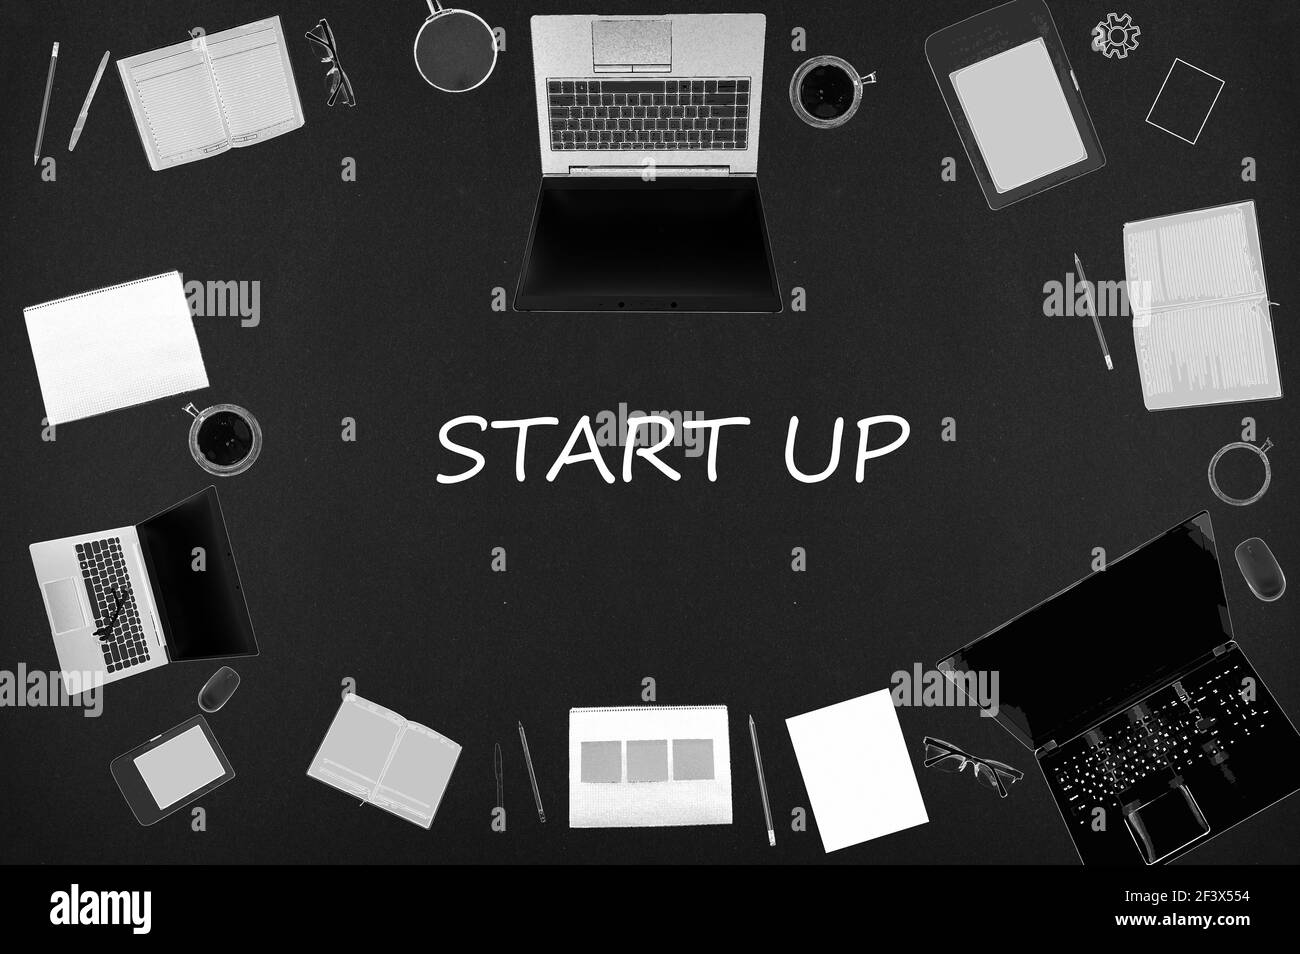 Start up concept. Top layout of drawings of laptops, notepads, coffee, different business stuff on black background. Stock Photo